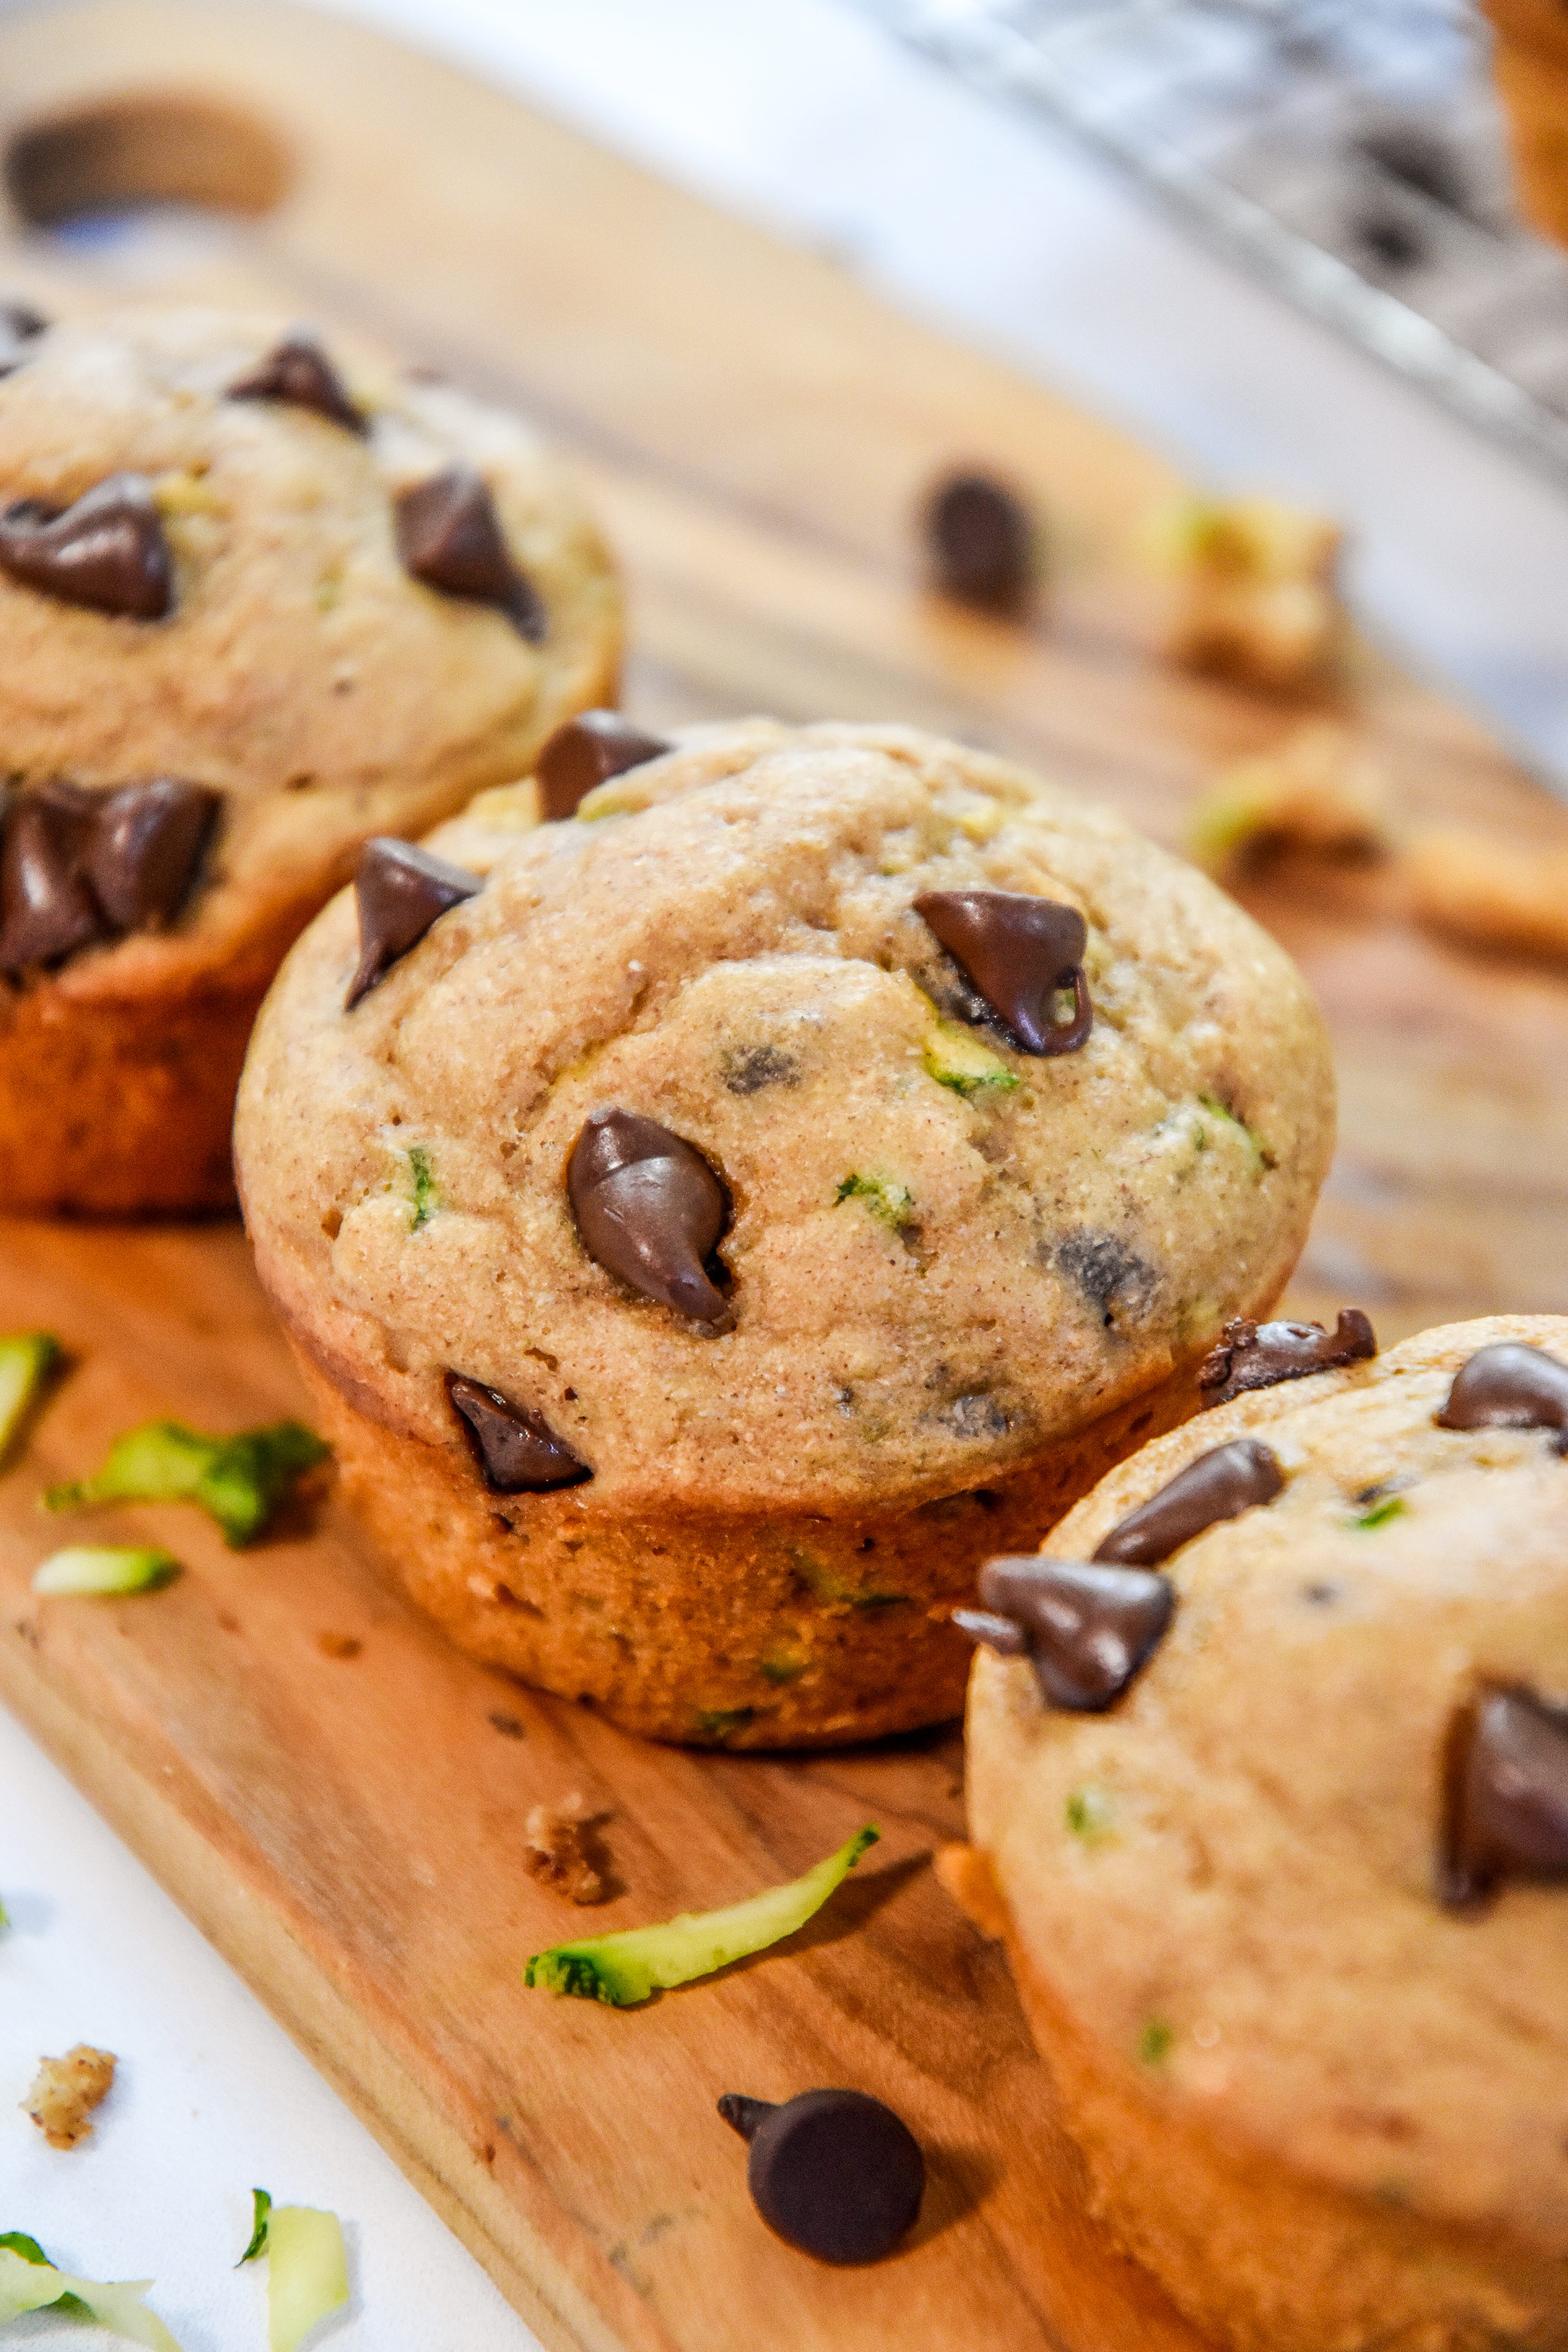 golden brown baked pancake mix zucchini muffins on a cutting board.